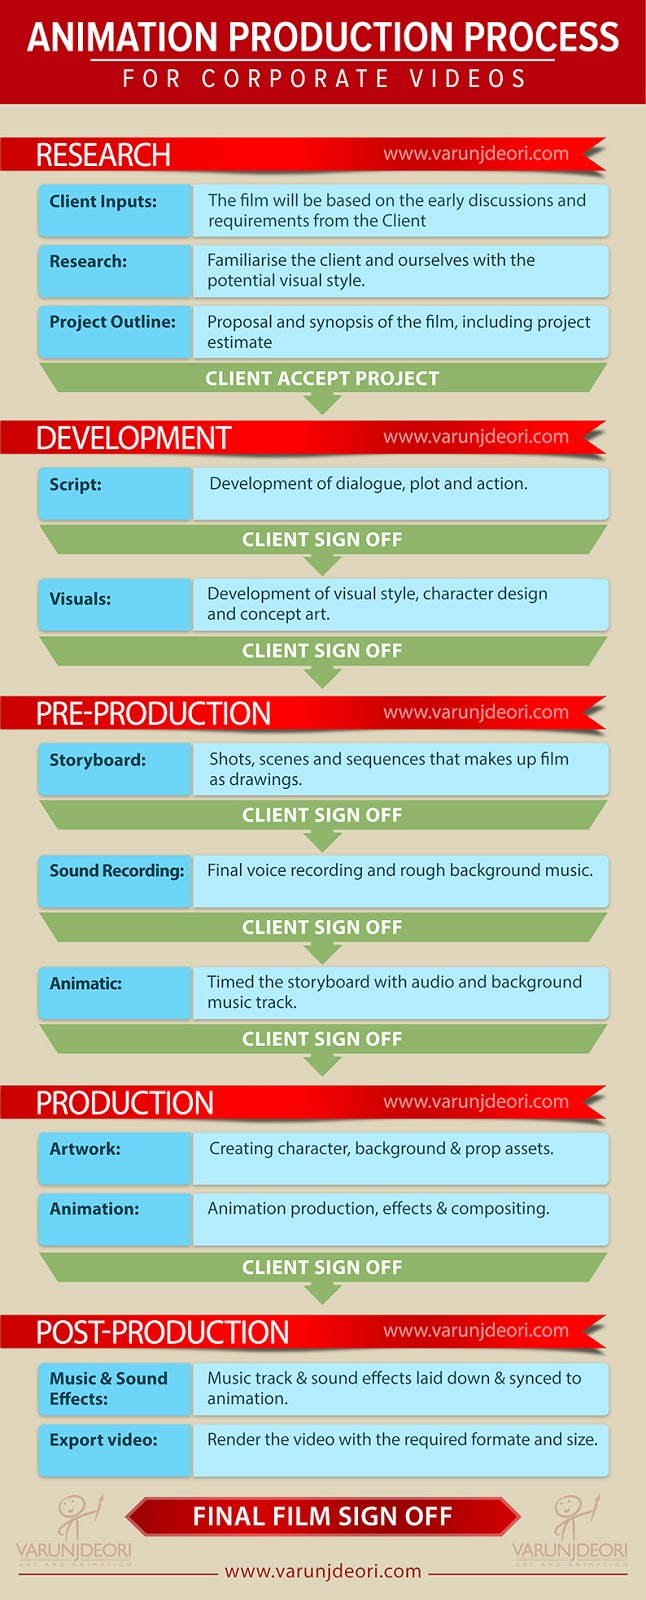 Animation Production Process